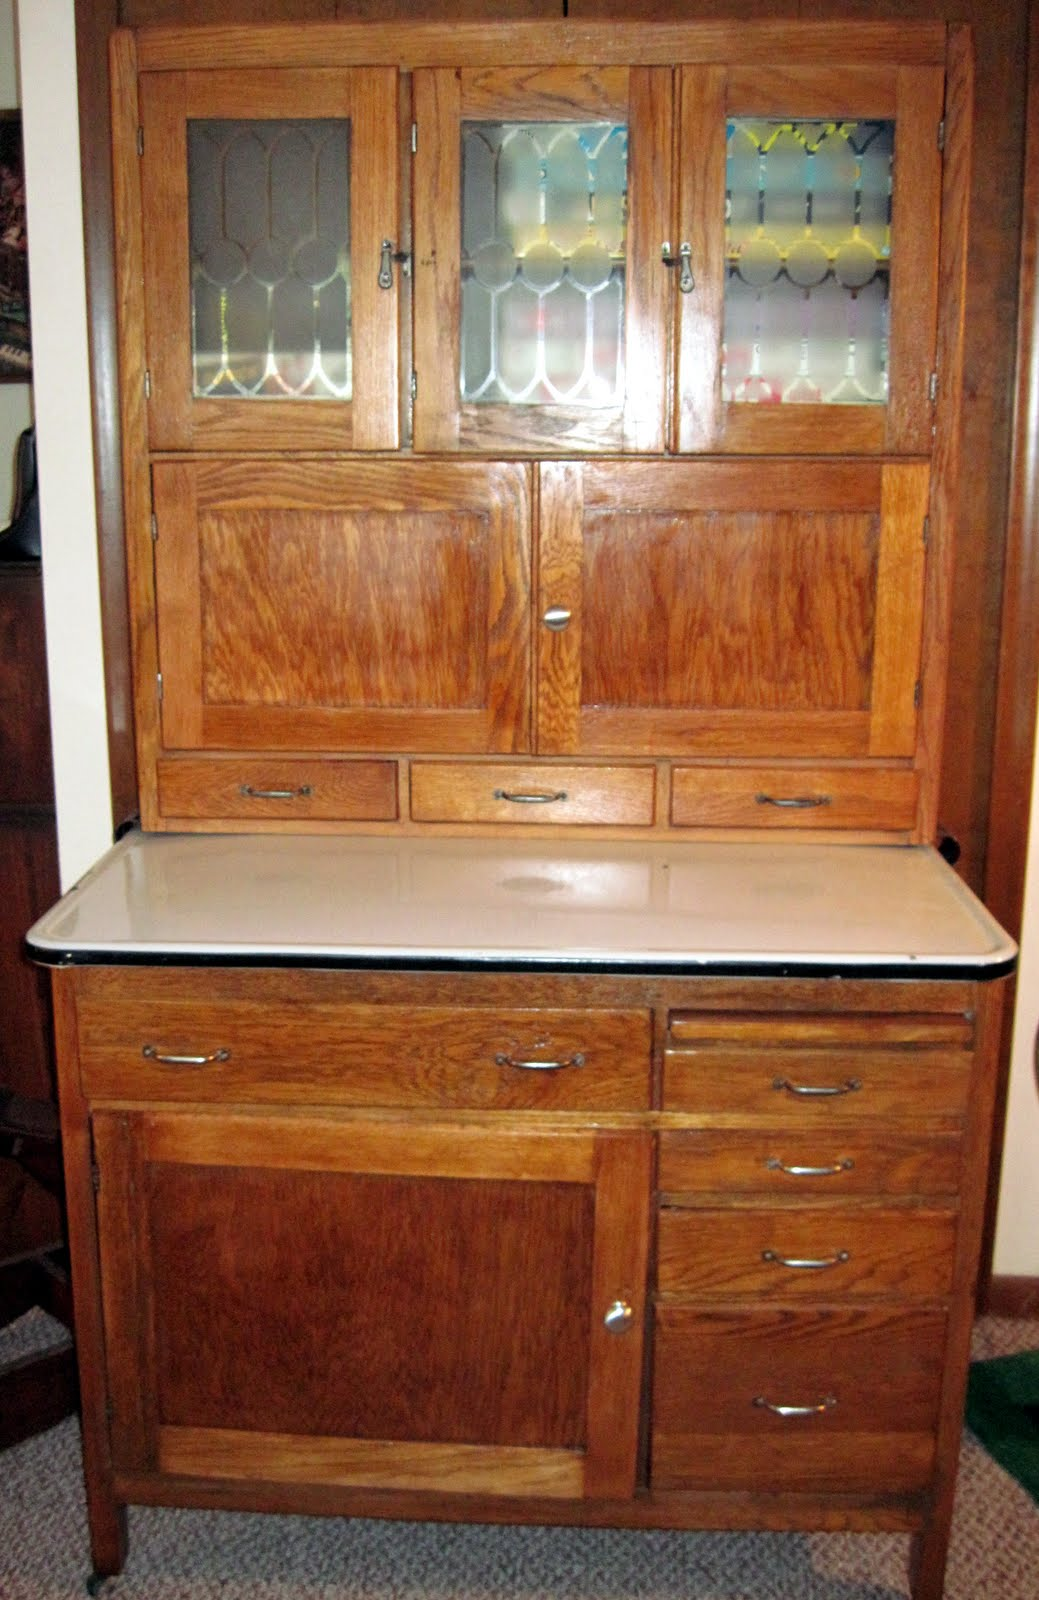 restore kitchen cabinets hoosier cabinet restoration parone 1916